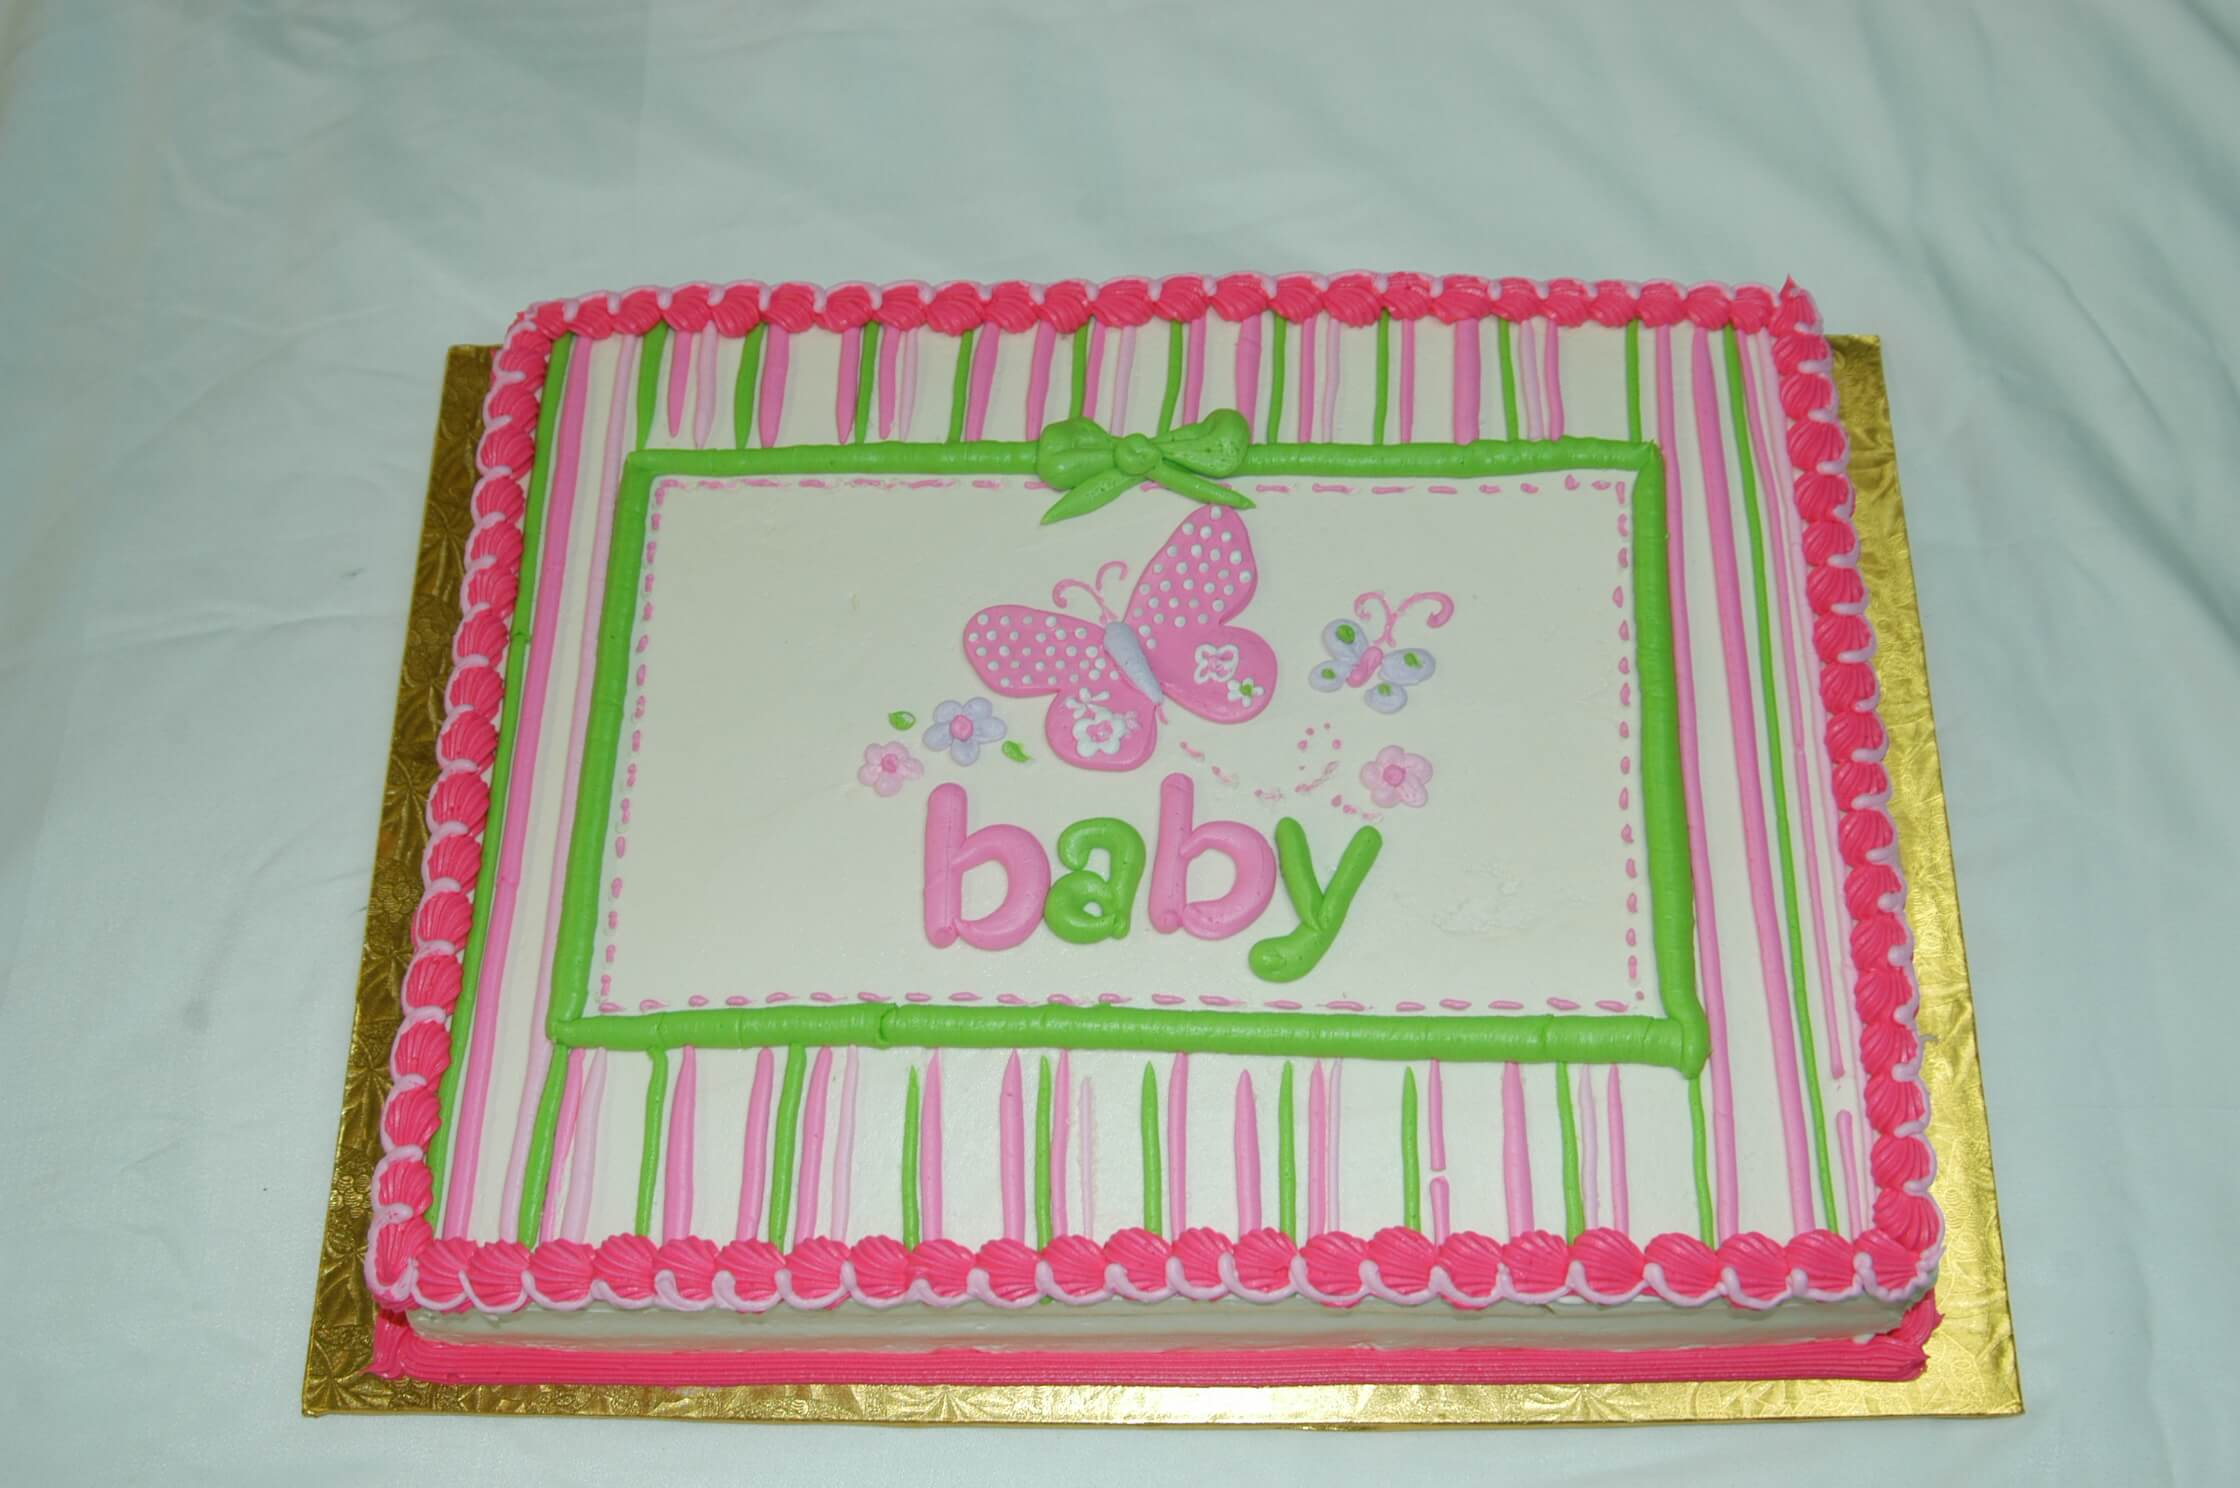 McArthur's Bakery Custom Cake with Pink and Green Stripes and Butterflies